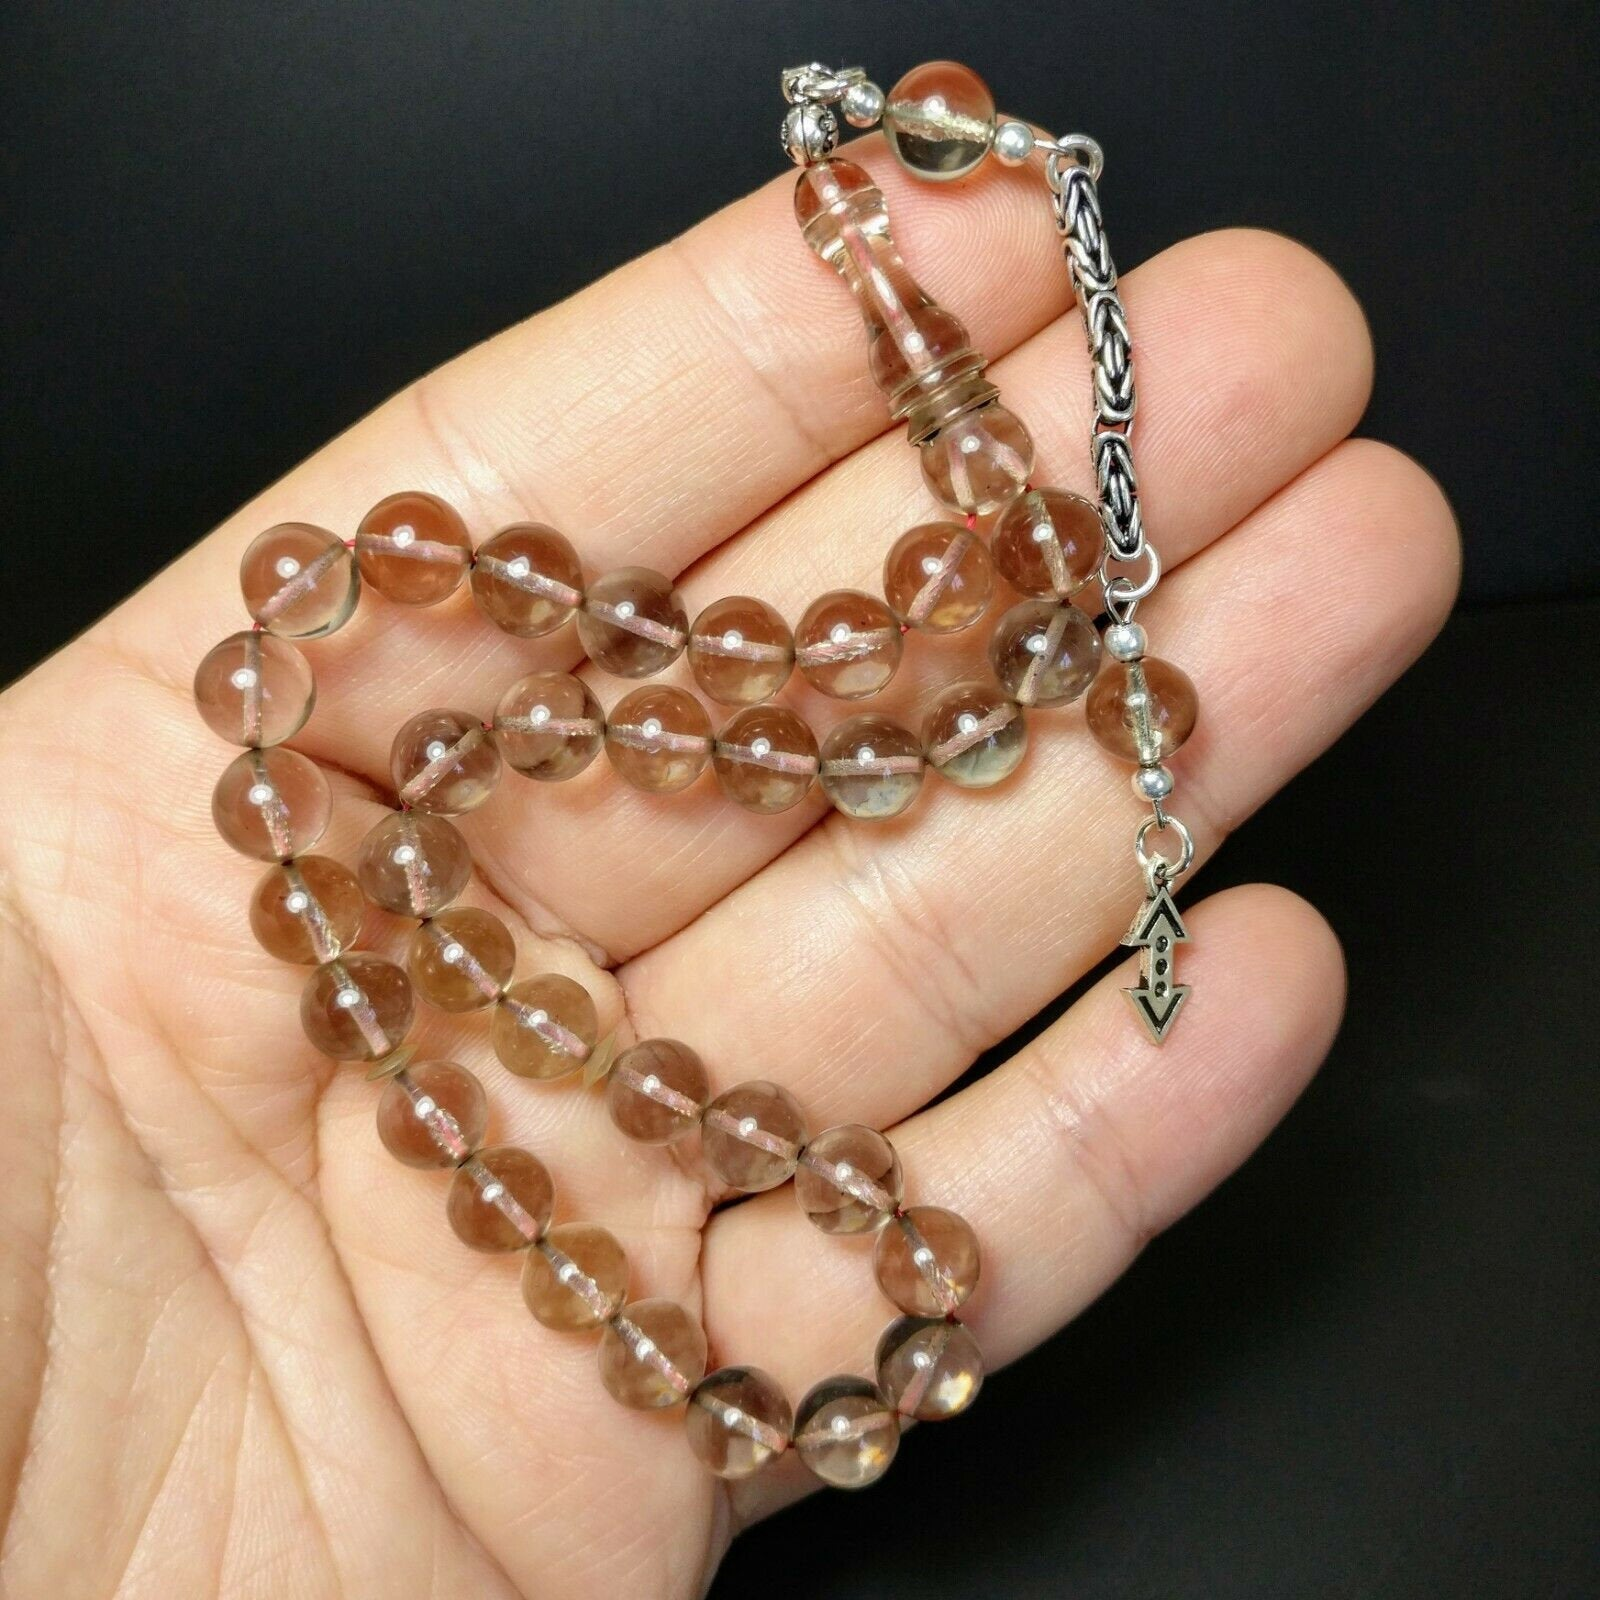 Turkish Clear Prayer Beads Tasbih Bilek SIKMA Kehribar Tesbih Misbaha Subha  747